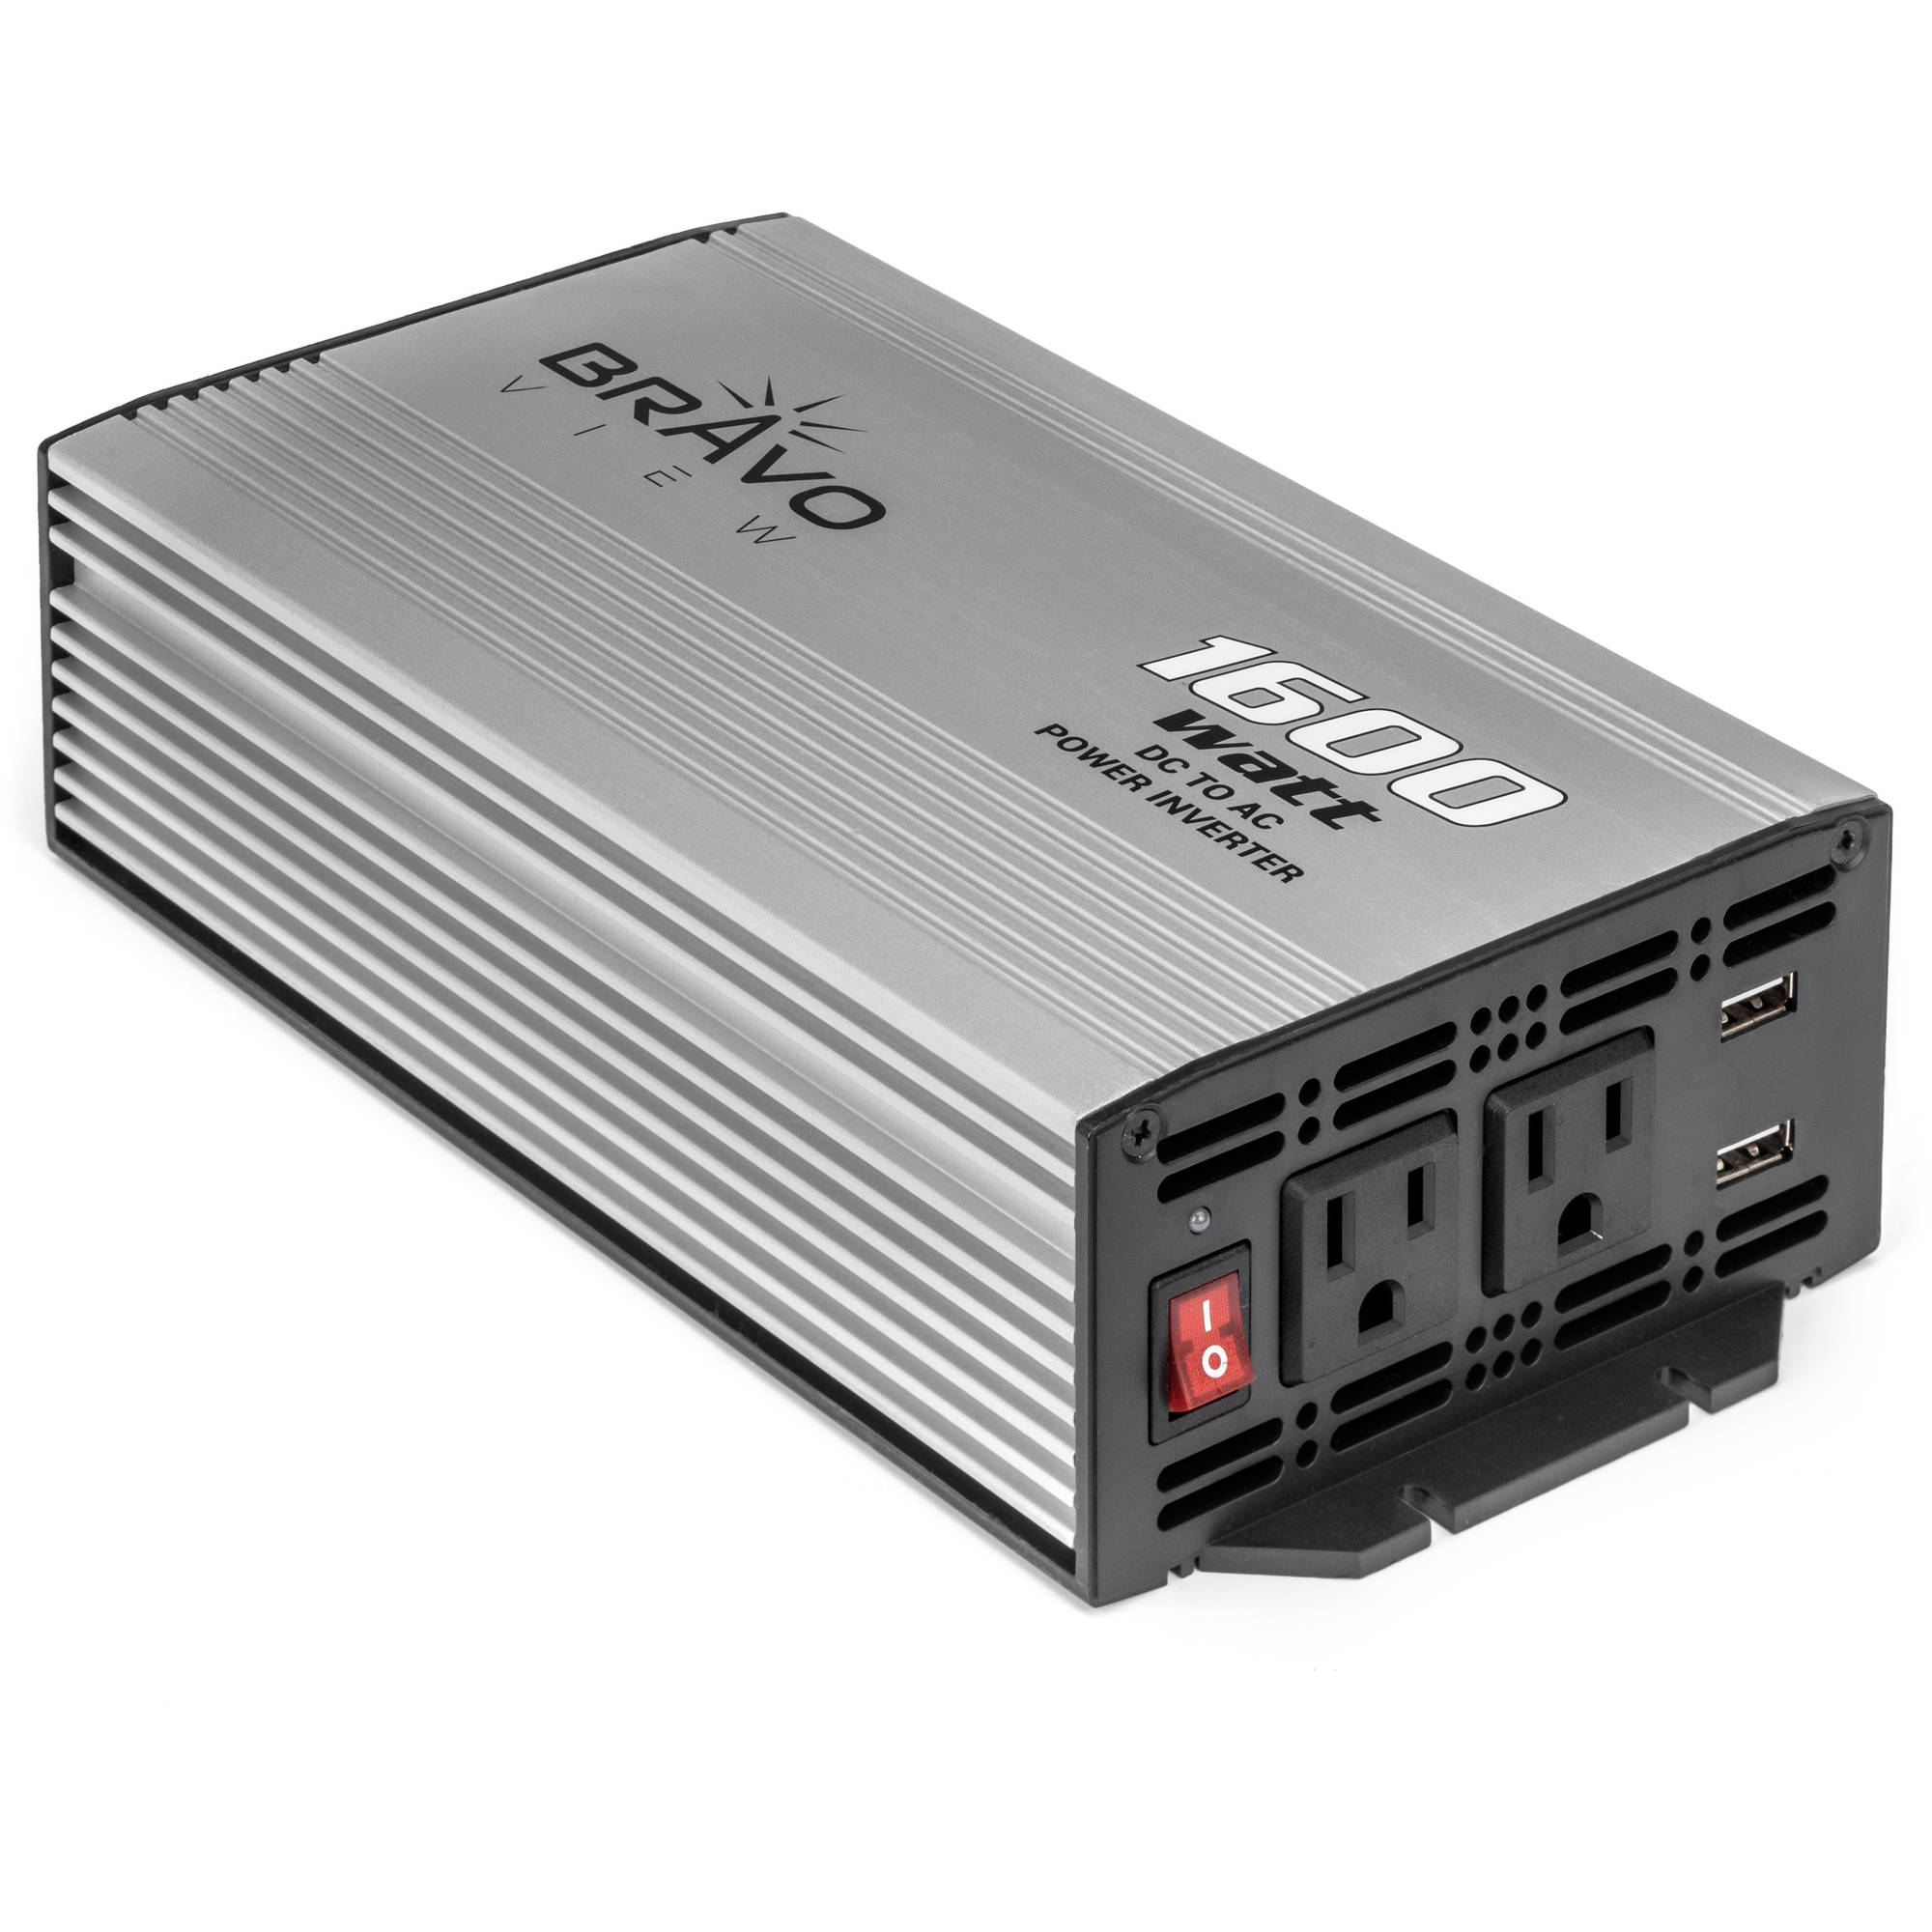 Bravo View INV-1600U - 1600-Watt Power Inverter with Dual USB Charging